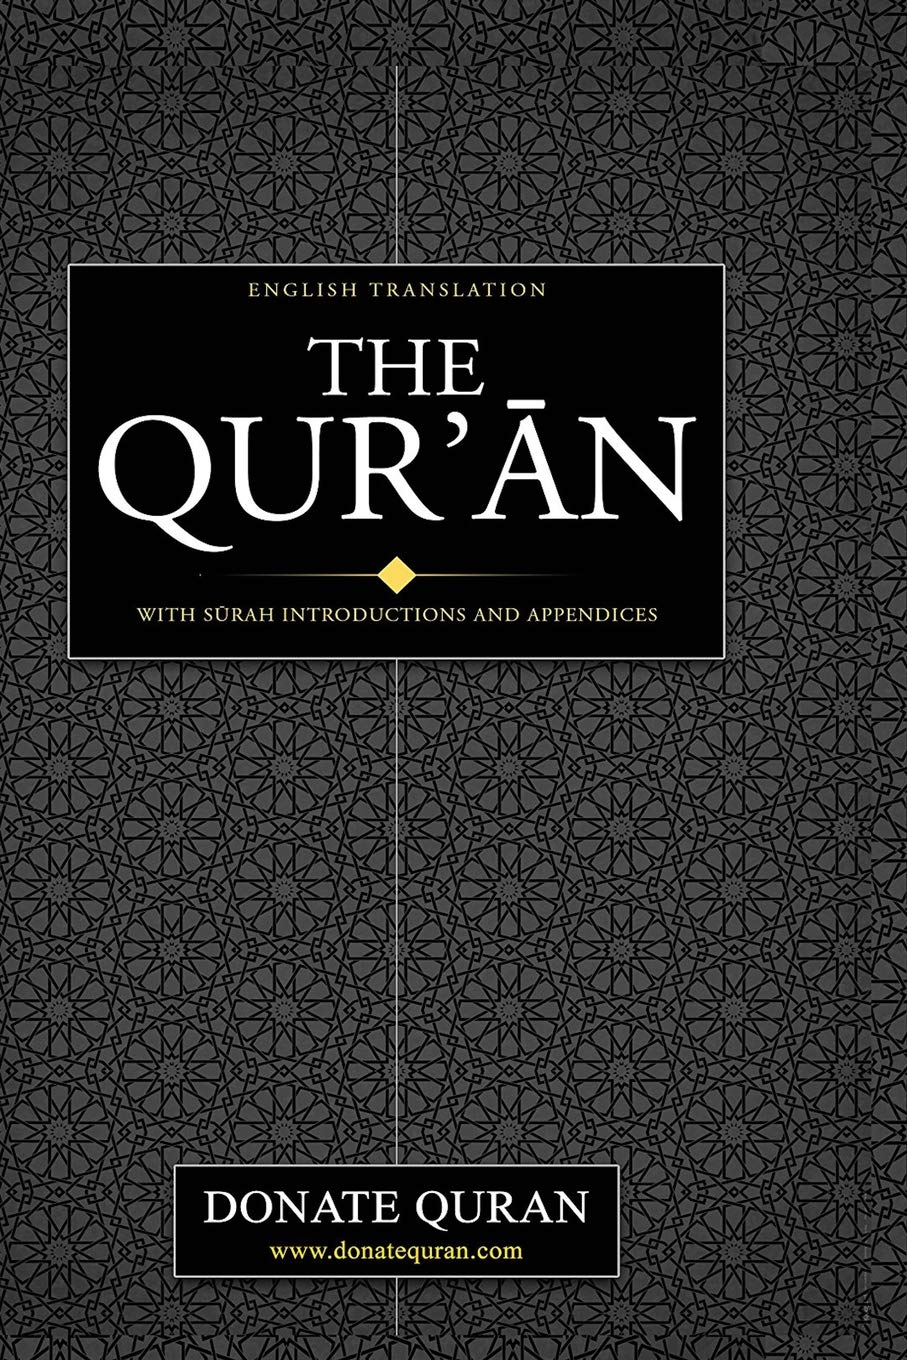 Buy The Qur'an: With Surah Introductions and Appendices - Saheeh